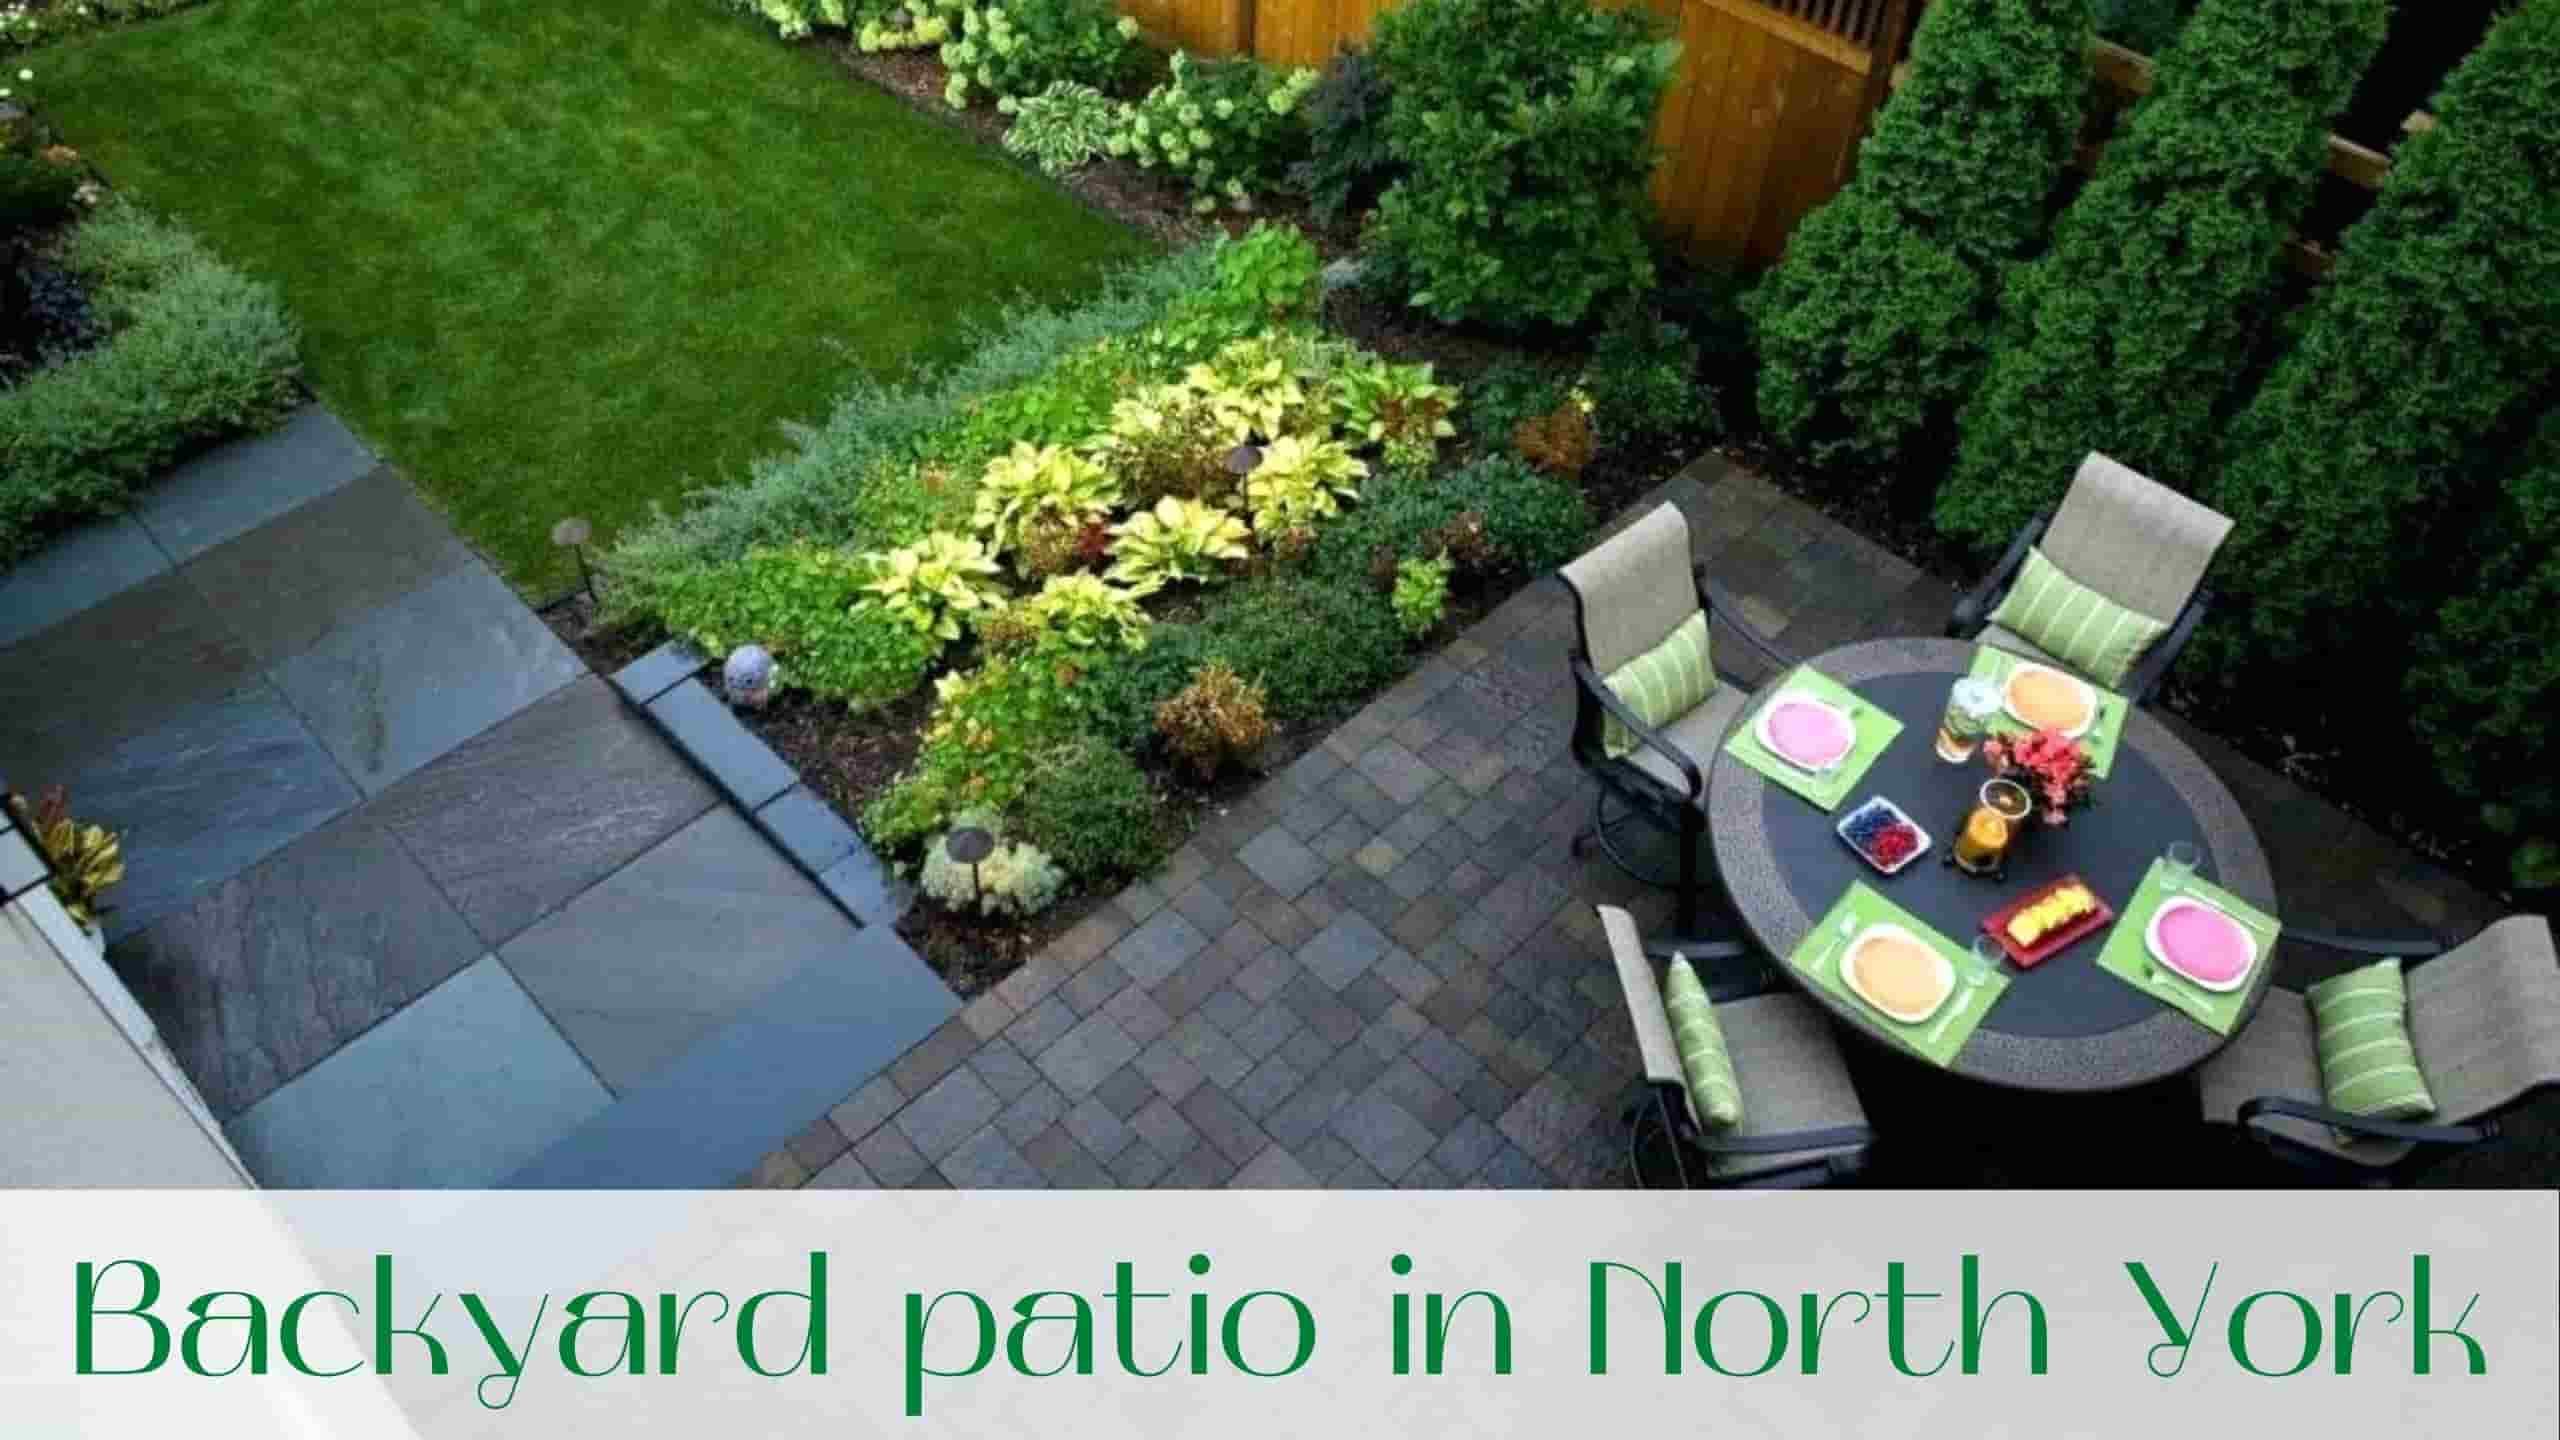 image-backyard-patio-in-north-york